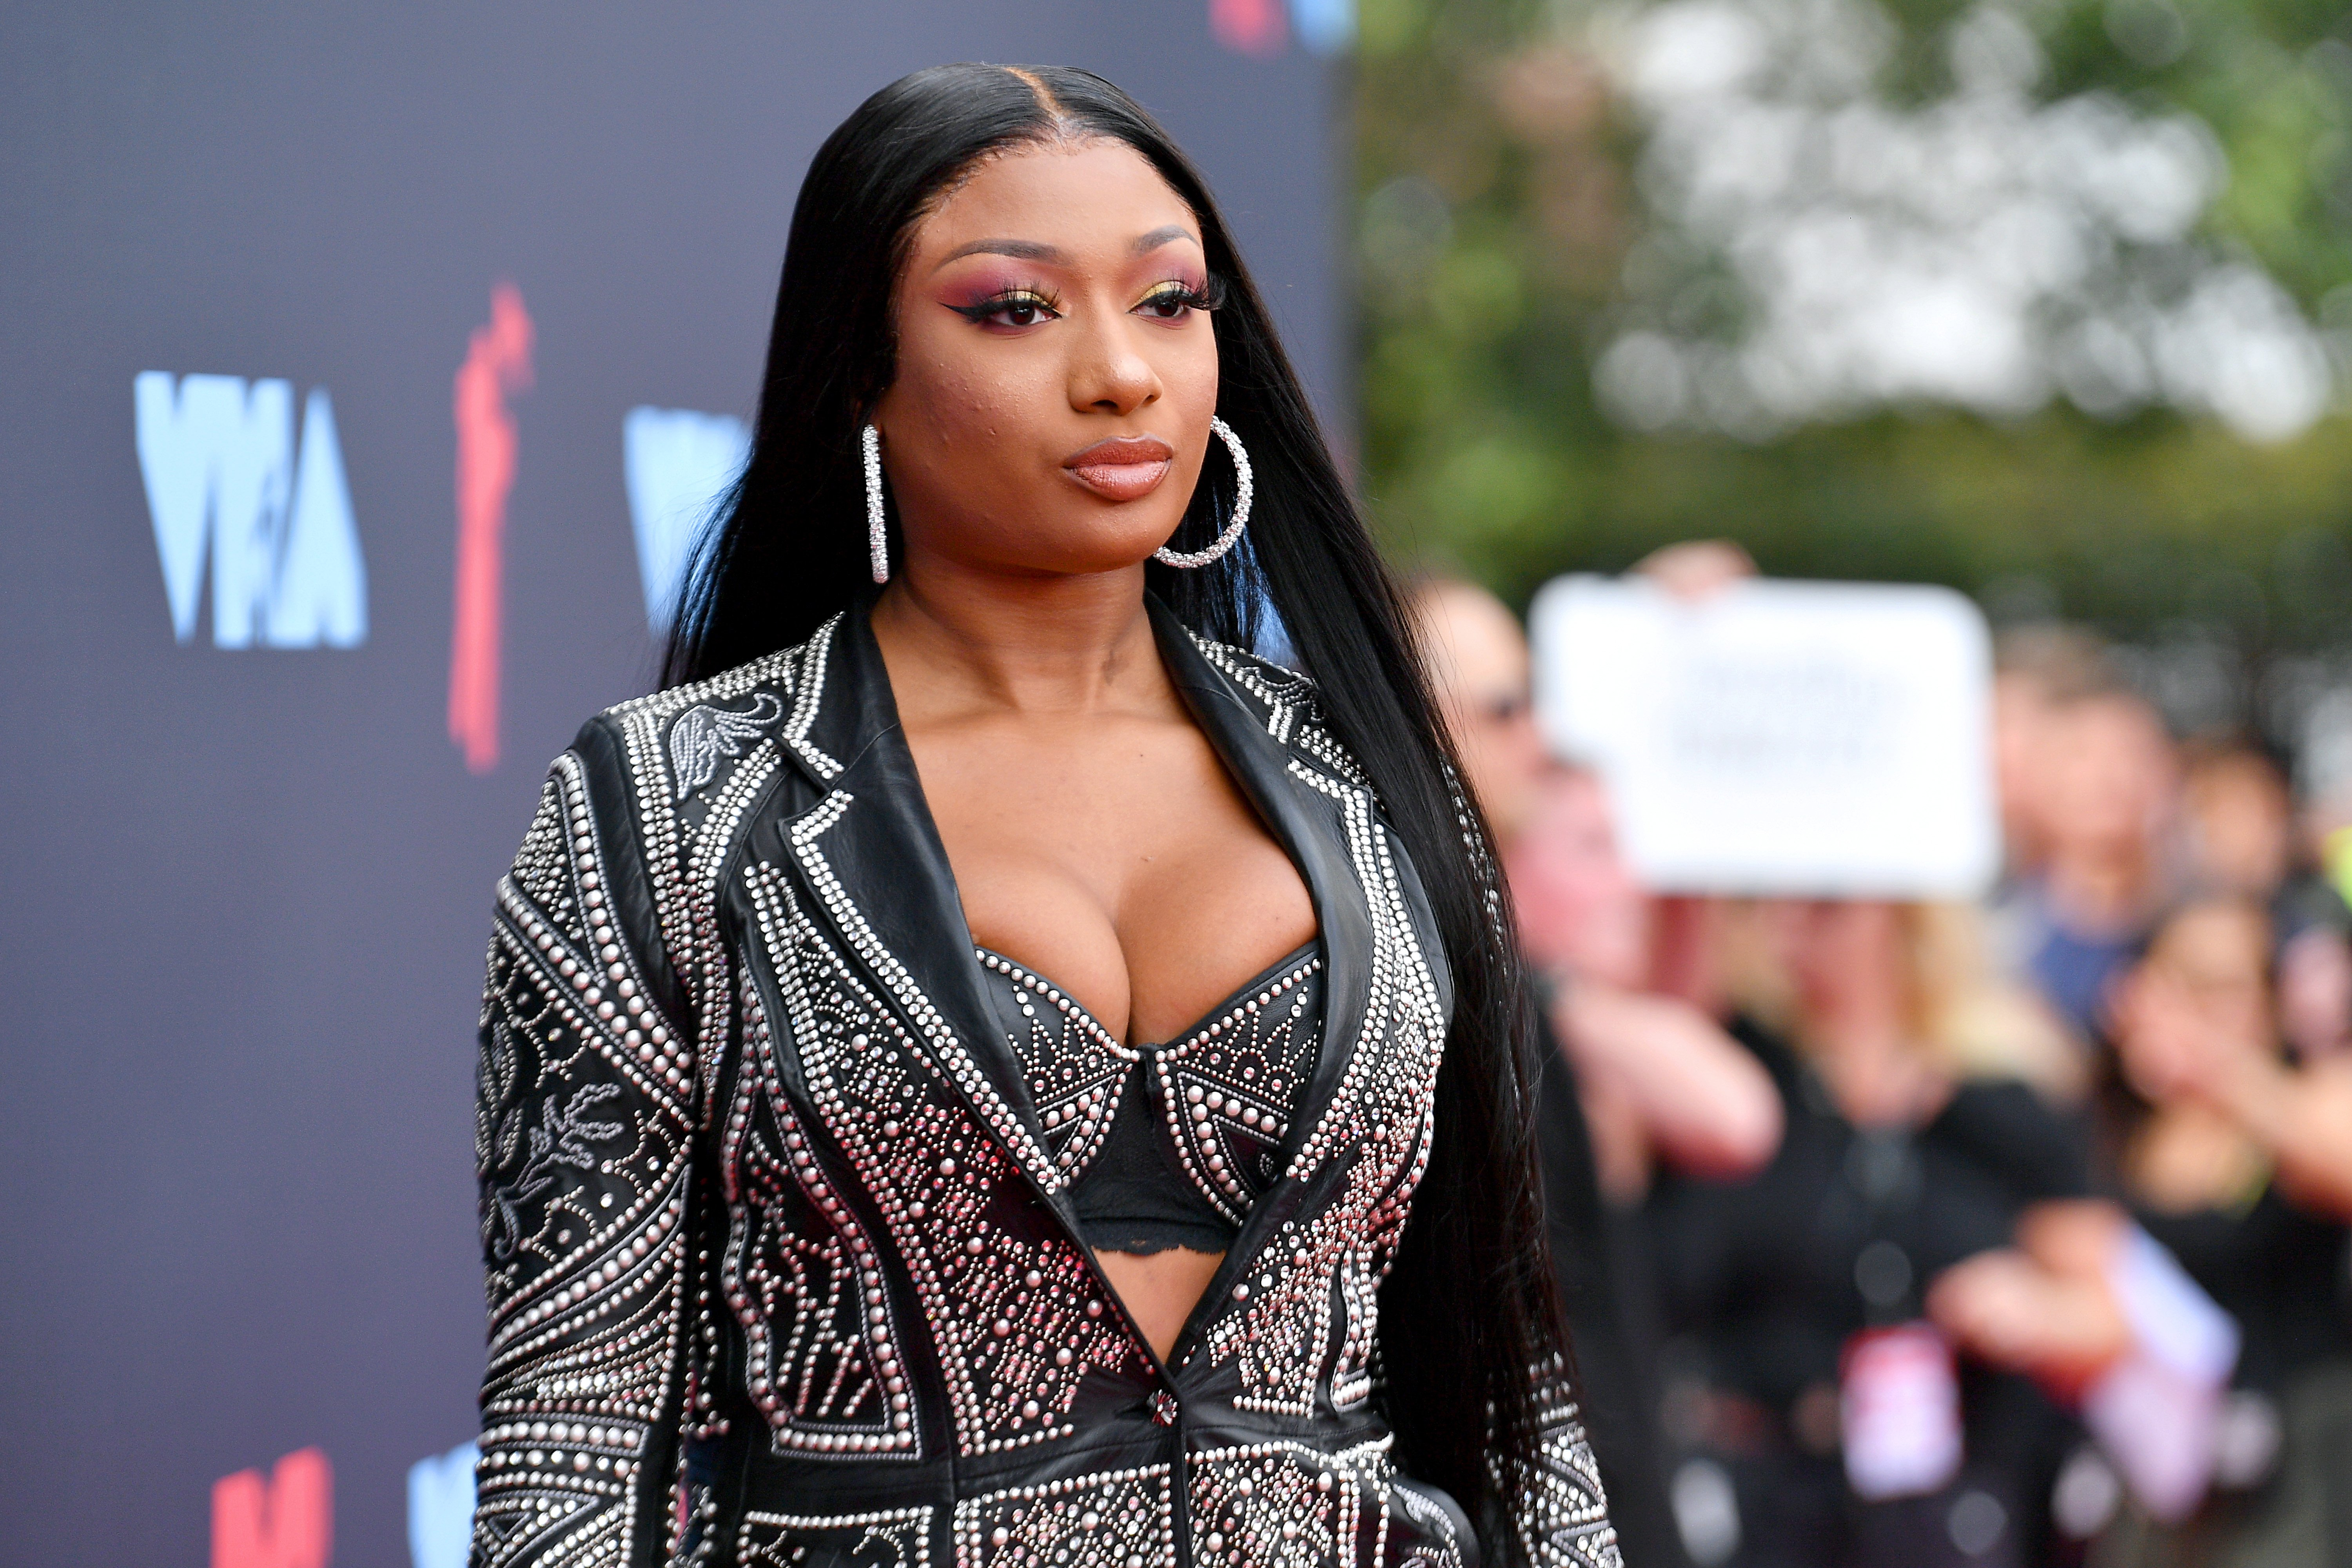 Megan Thee Stallion at the 2019 MTV Video Music Awards on August 26, 2019 in Newark, New Jersey.   Photo: Getty Images